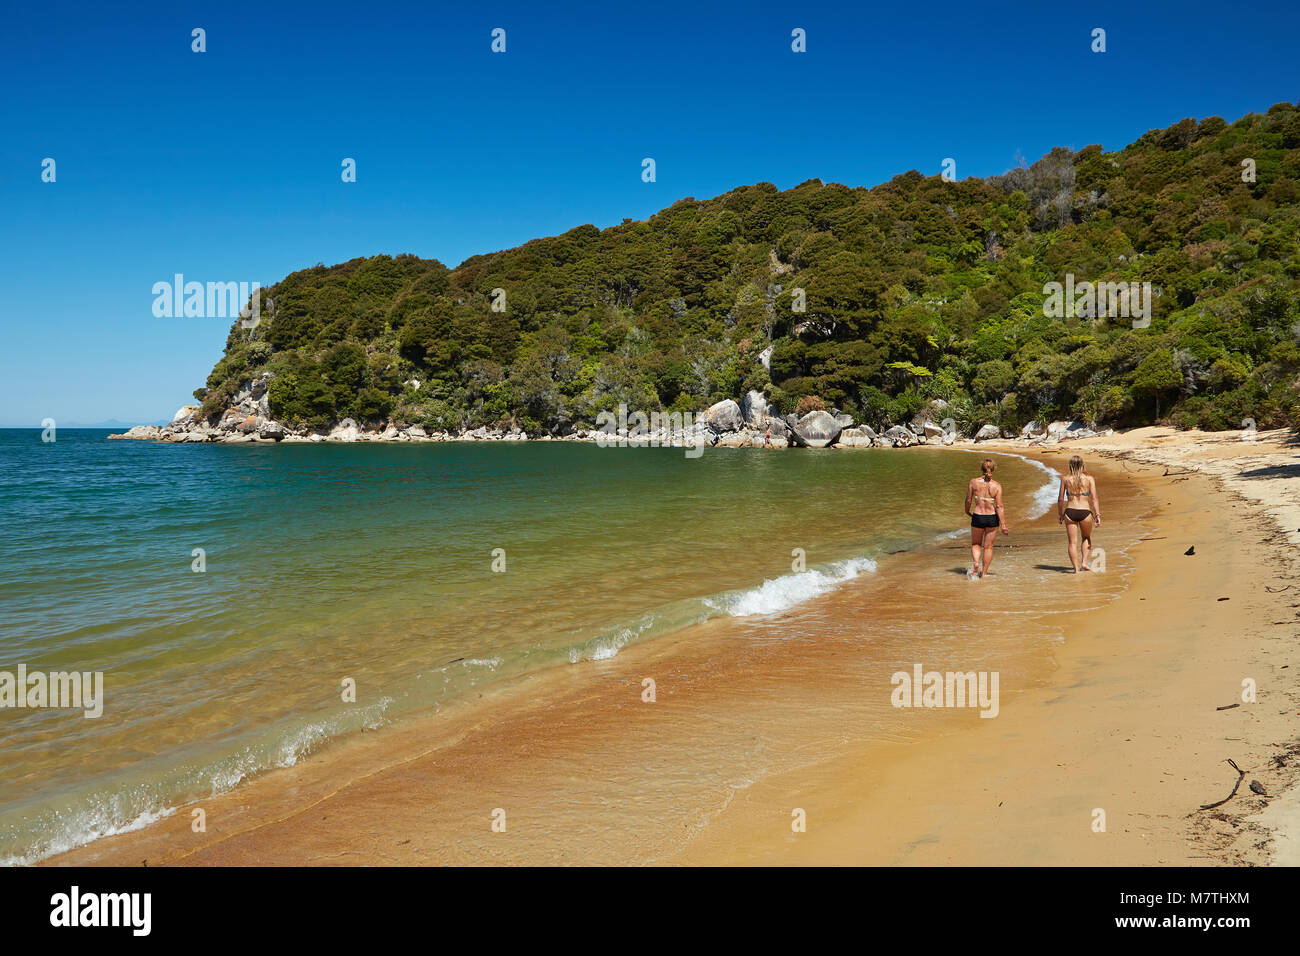 People walking along beach at Te Pukatea Bay, Abel Tasman National Park, Nelson Region, South Island, New Zealand - Stock Image